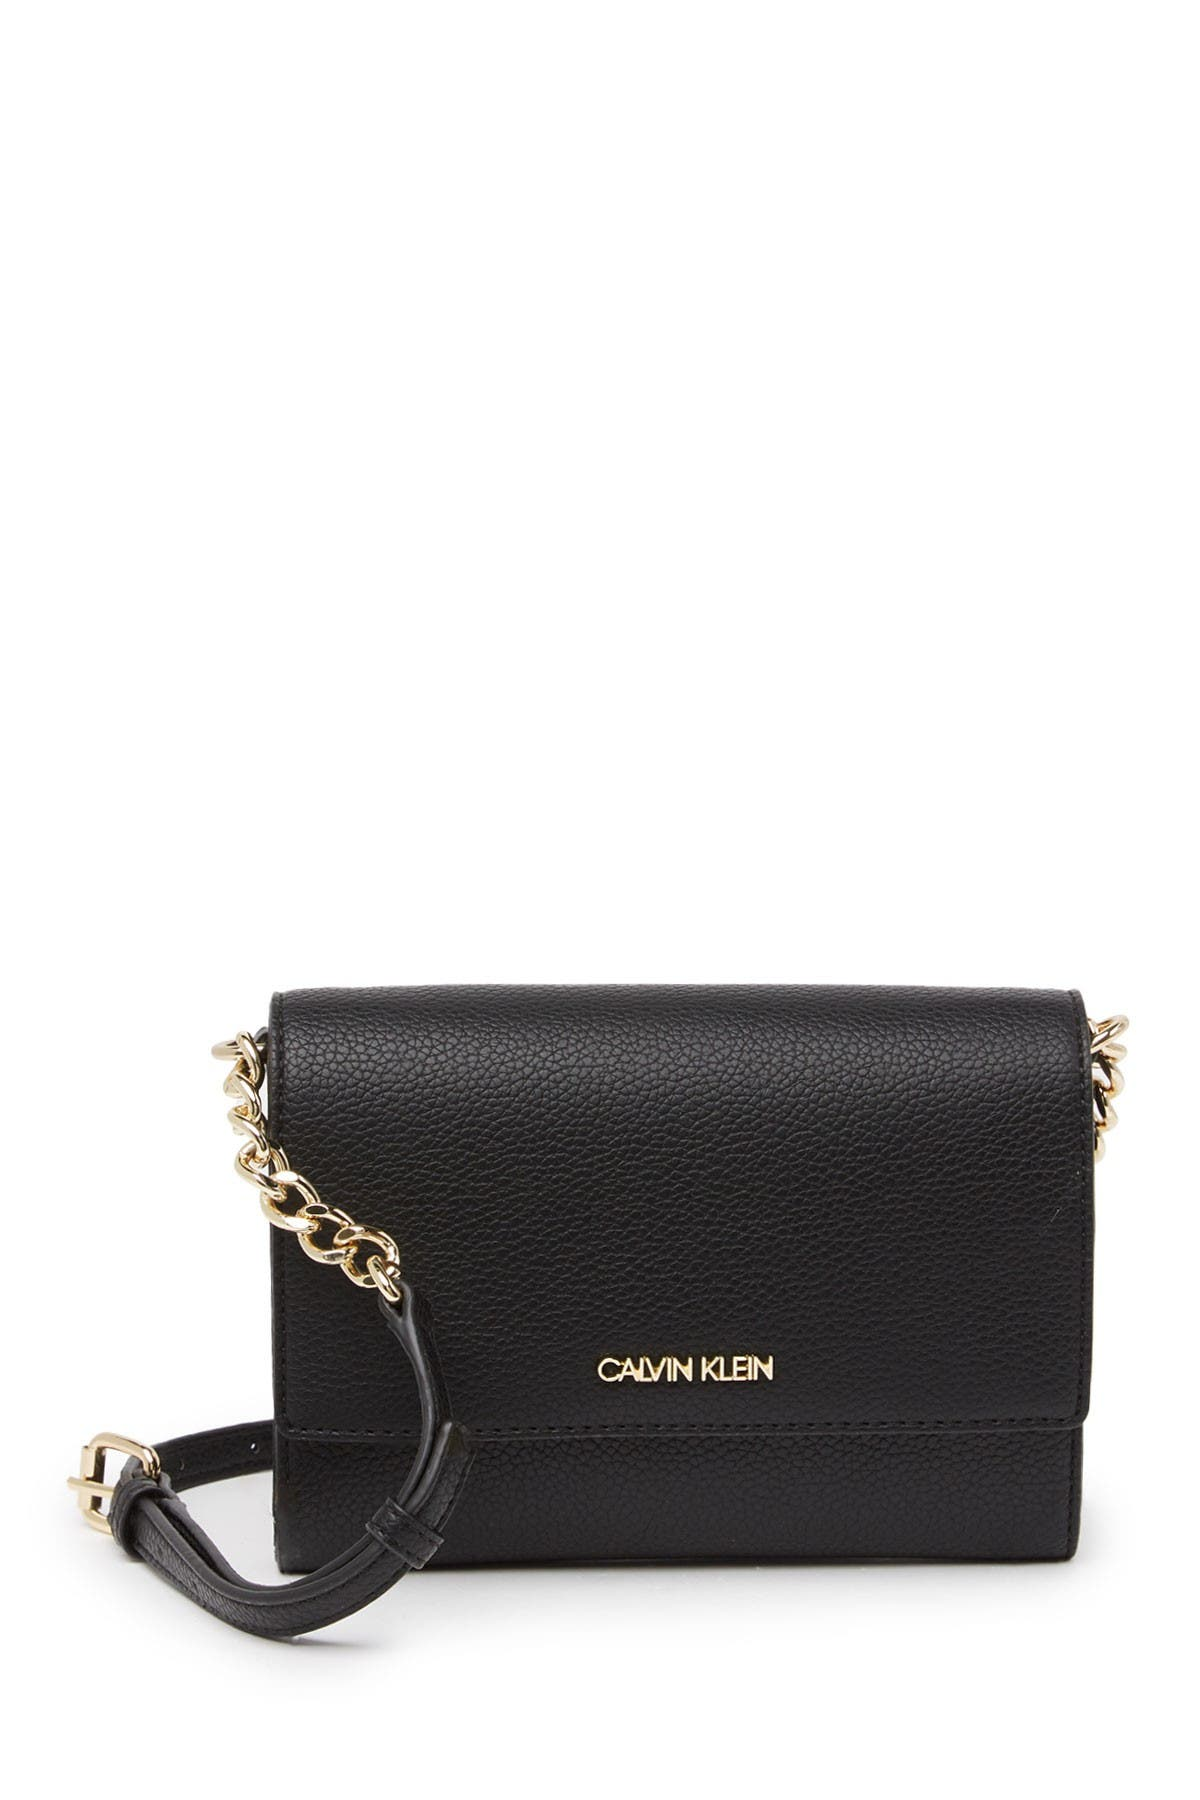 Image of Calvin Klein Leather Chain Wallet